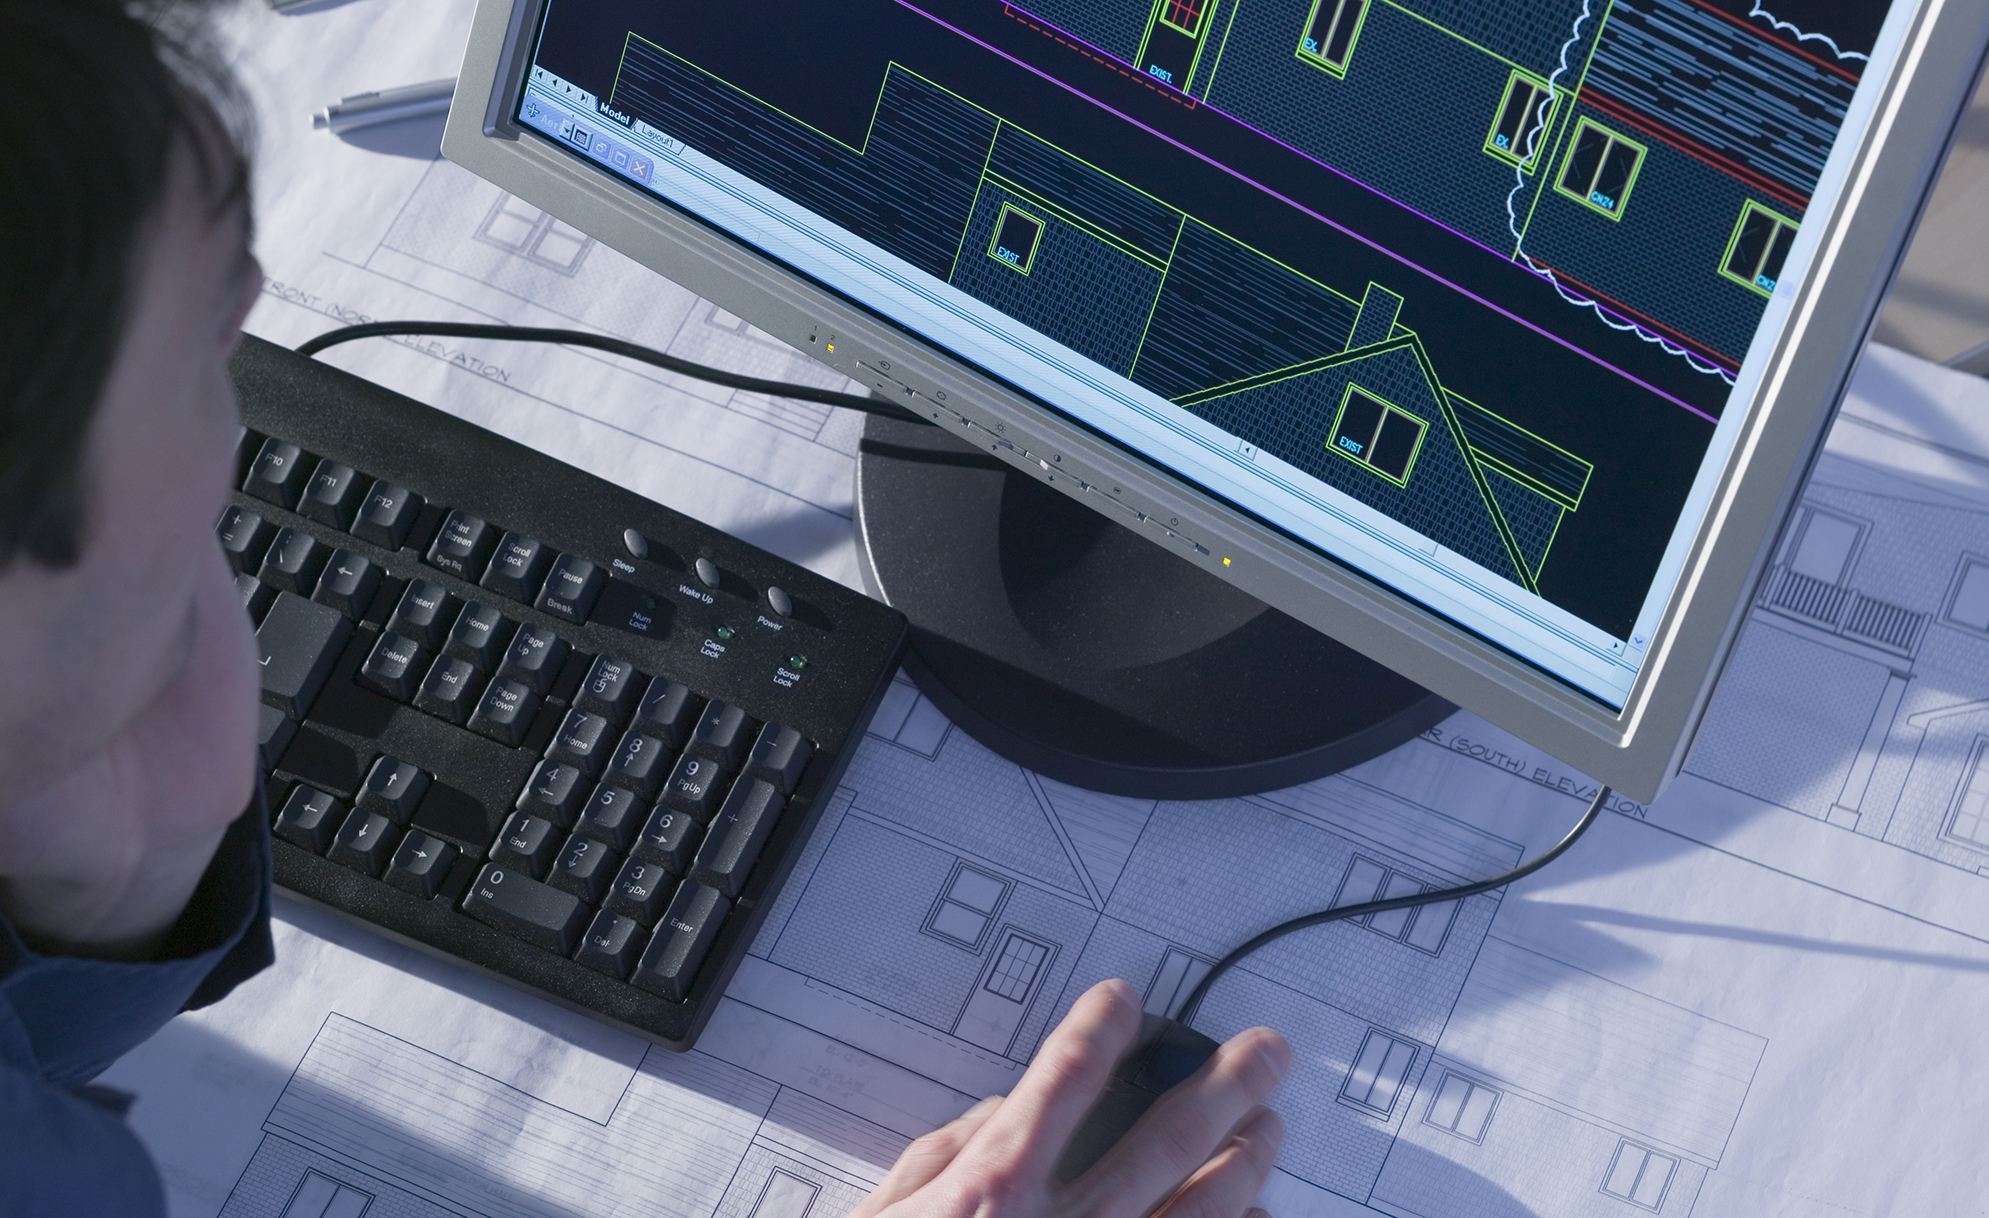 image of the hands of a male student working on computer drafting and blueprints.